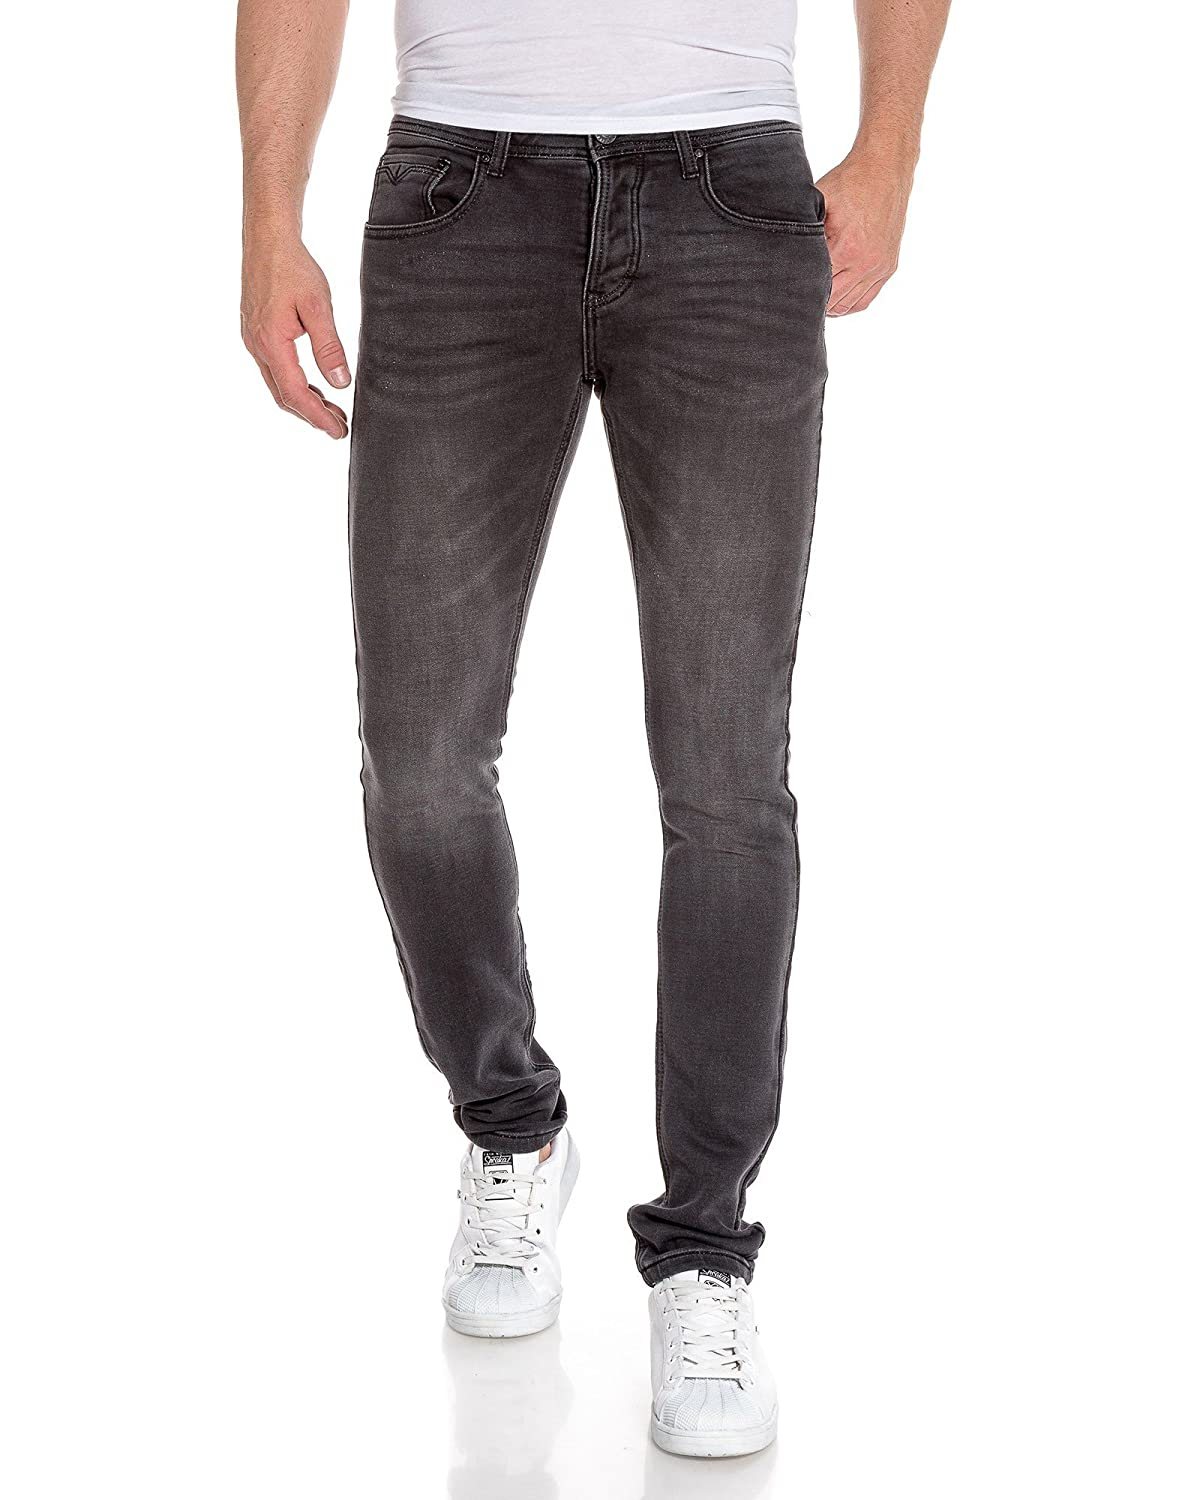 good BLZ jeans - Jog skinny faded black jeans and wrinkled trend